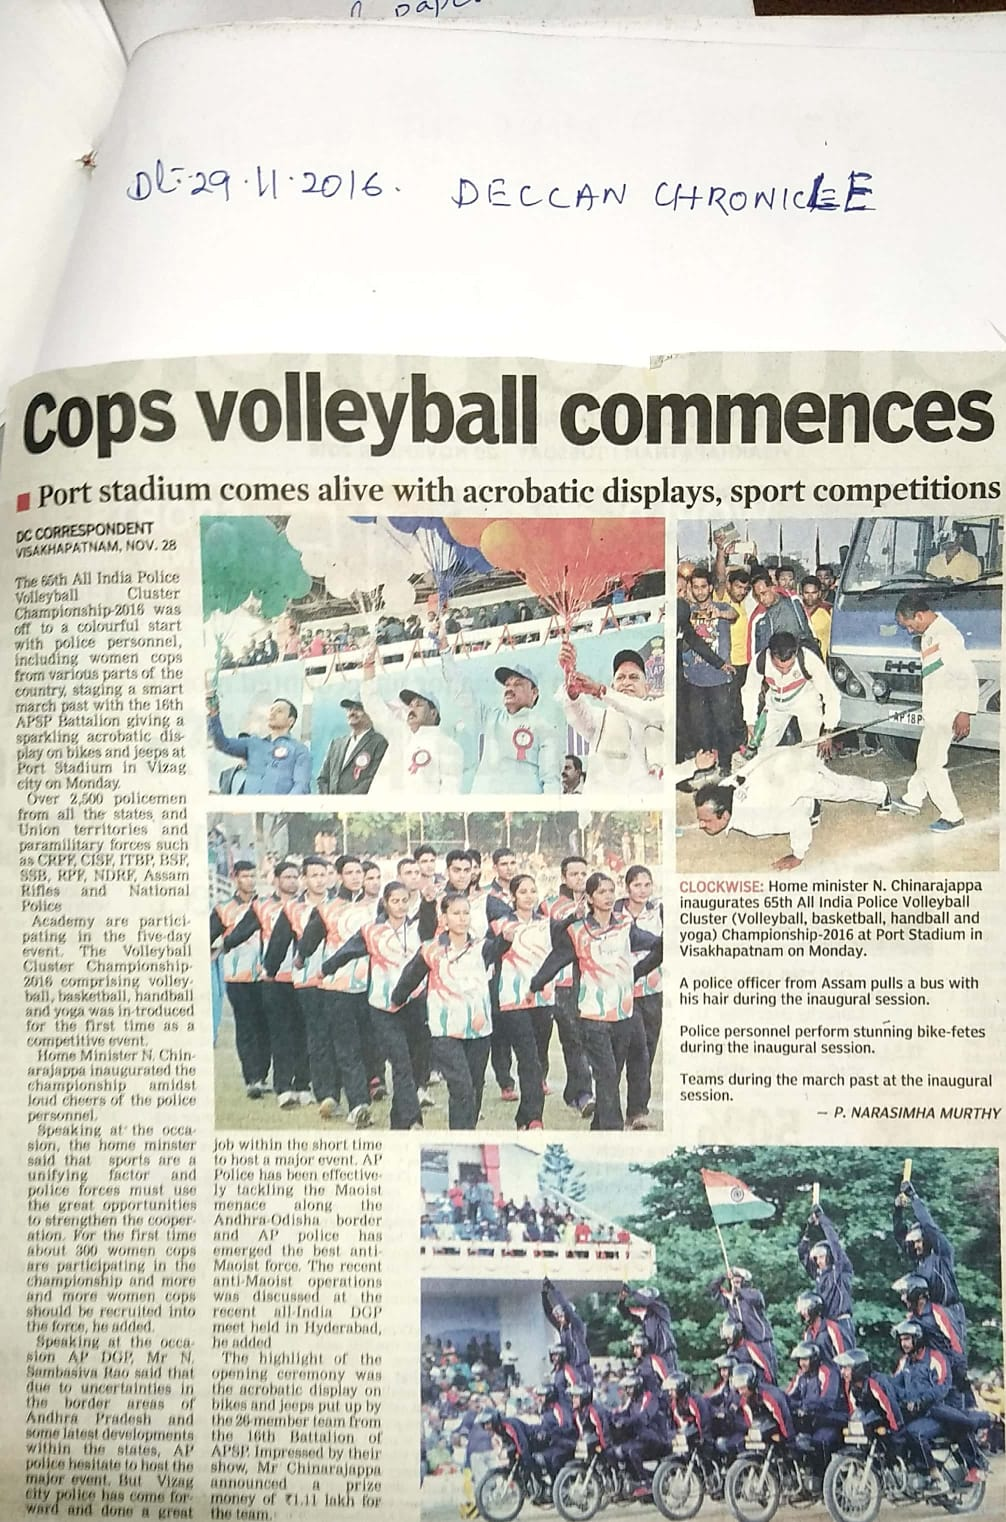 Cops Volleyball Commences- Port Stadium comes alive with acrobatic displays